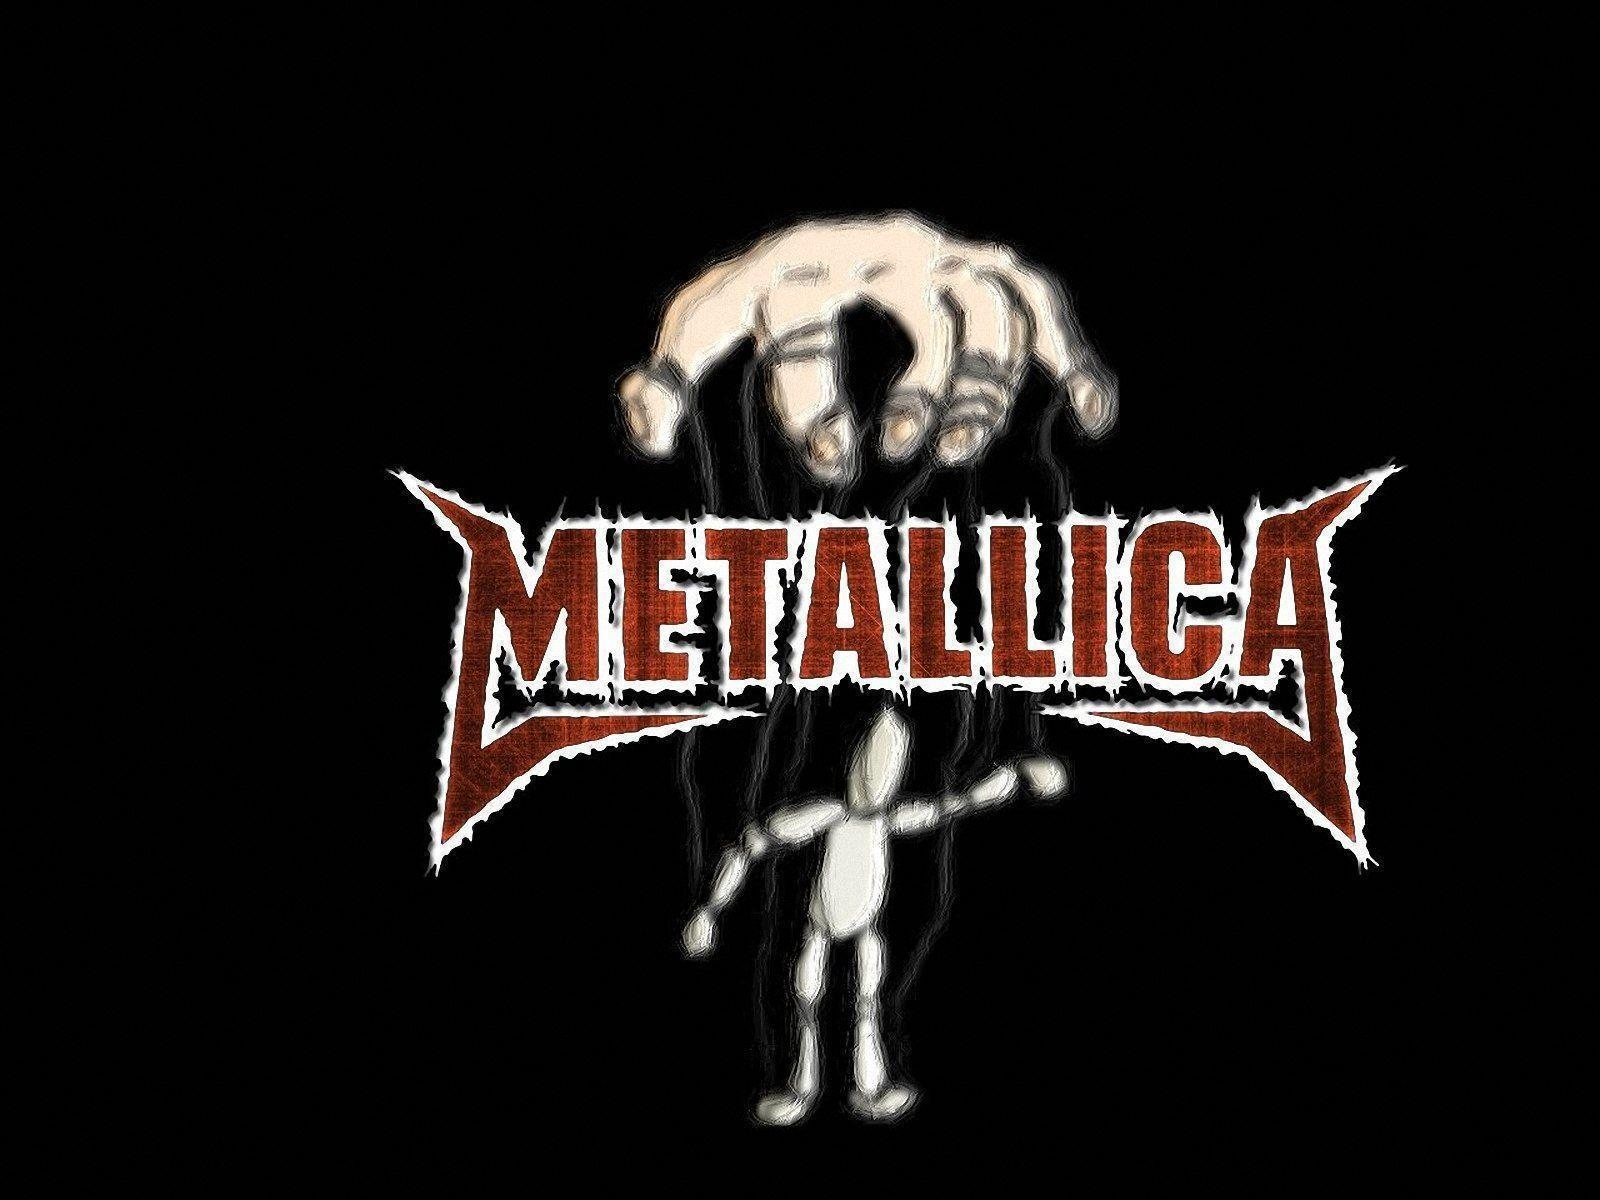 Outstanding Metallica wallpapers